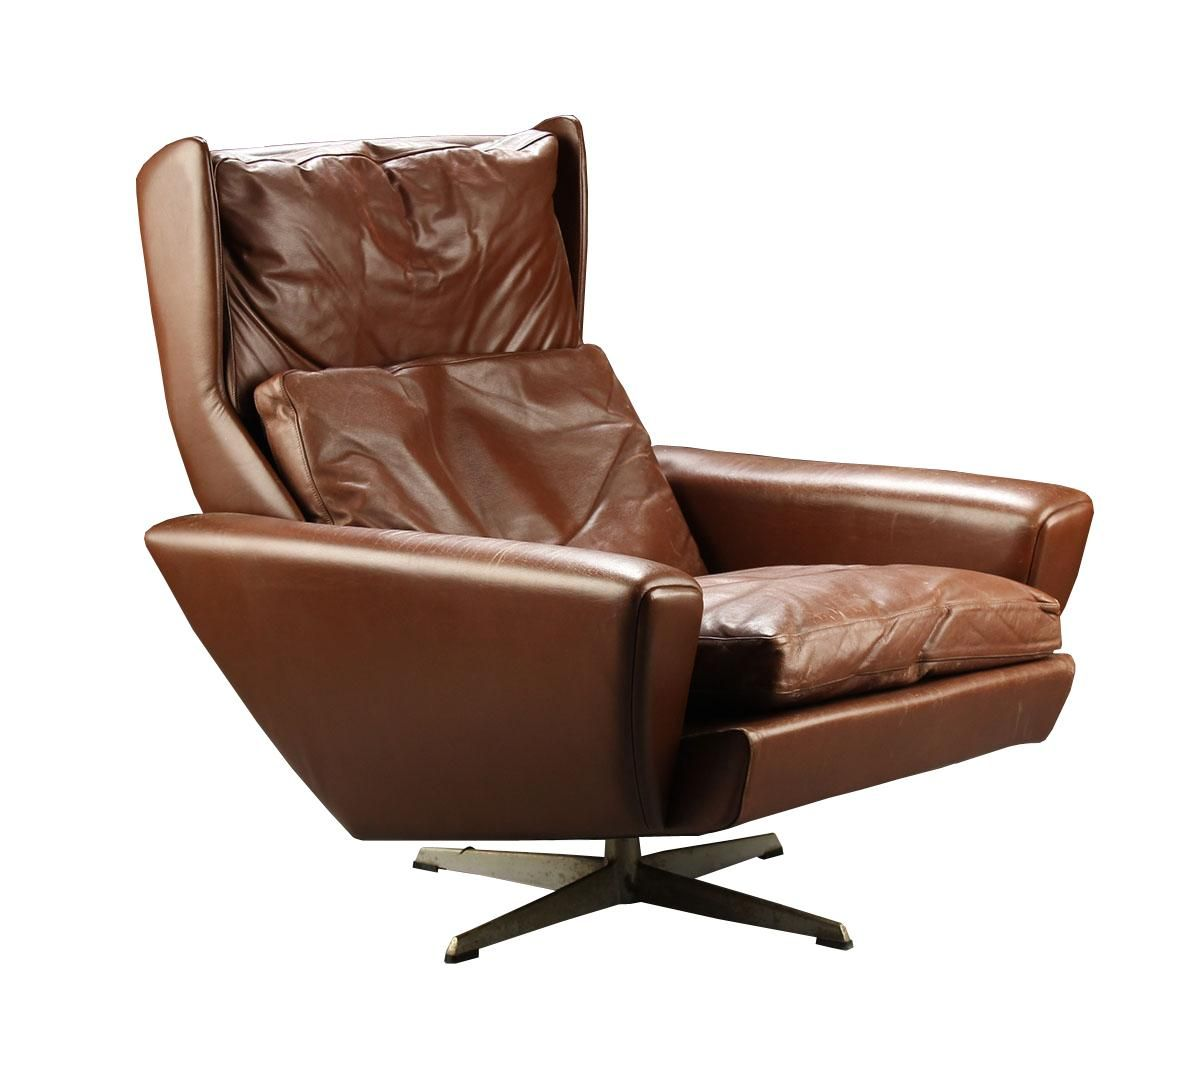 Superieur Brown Leather Wingback Swivel Chair By Georg Thams For Polstermøbelfabrik 1